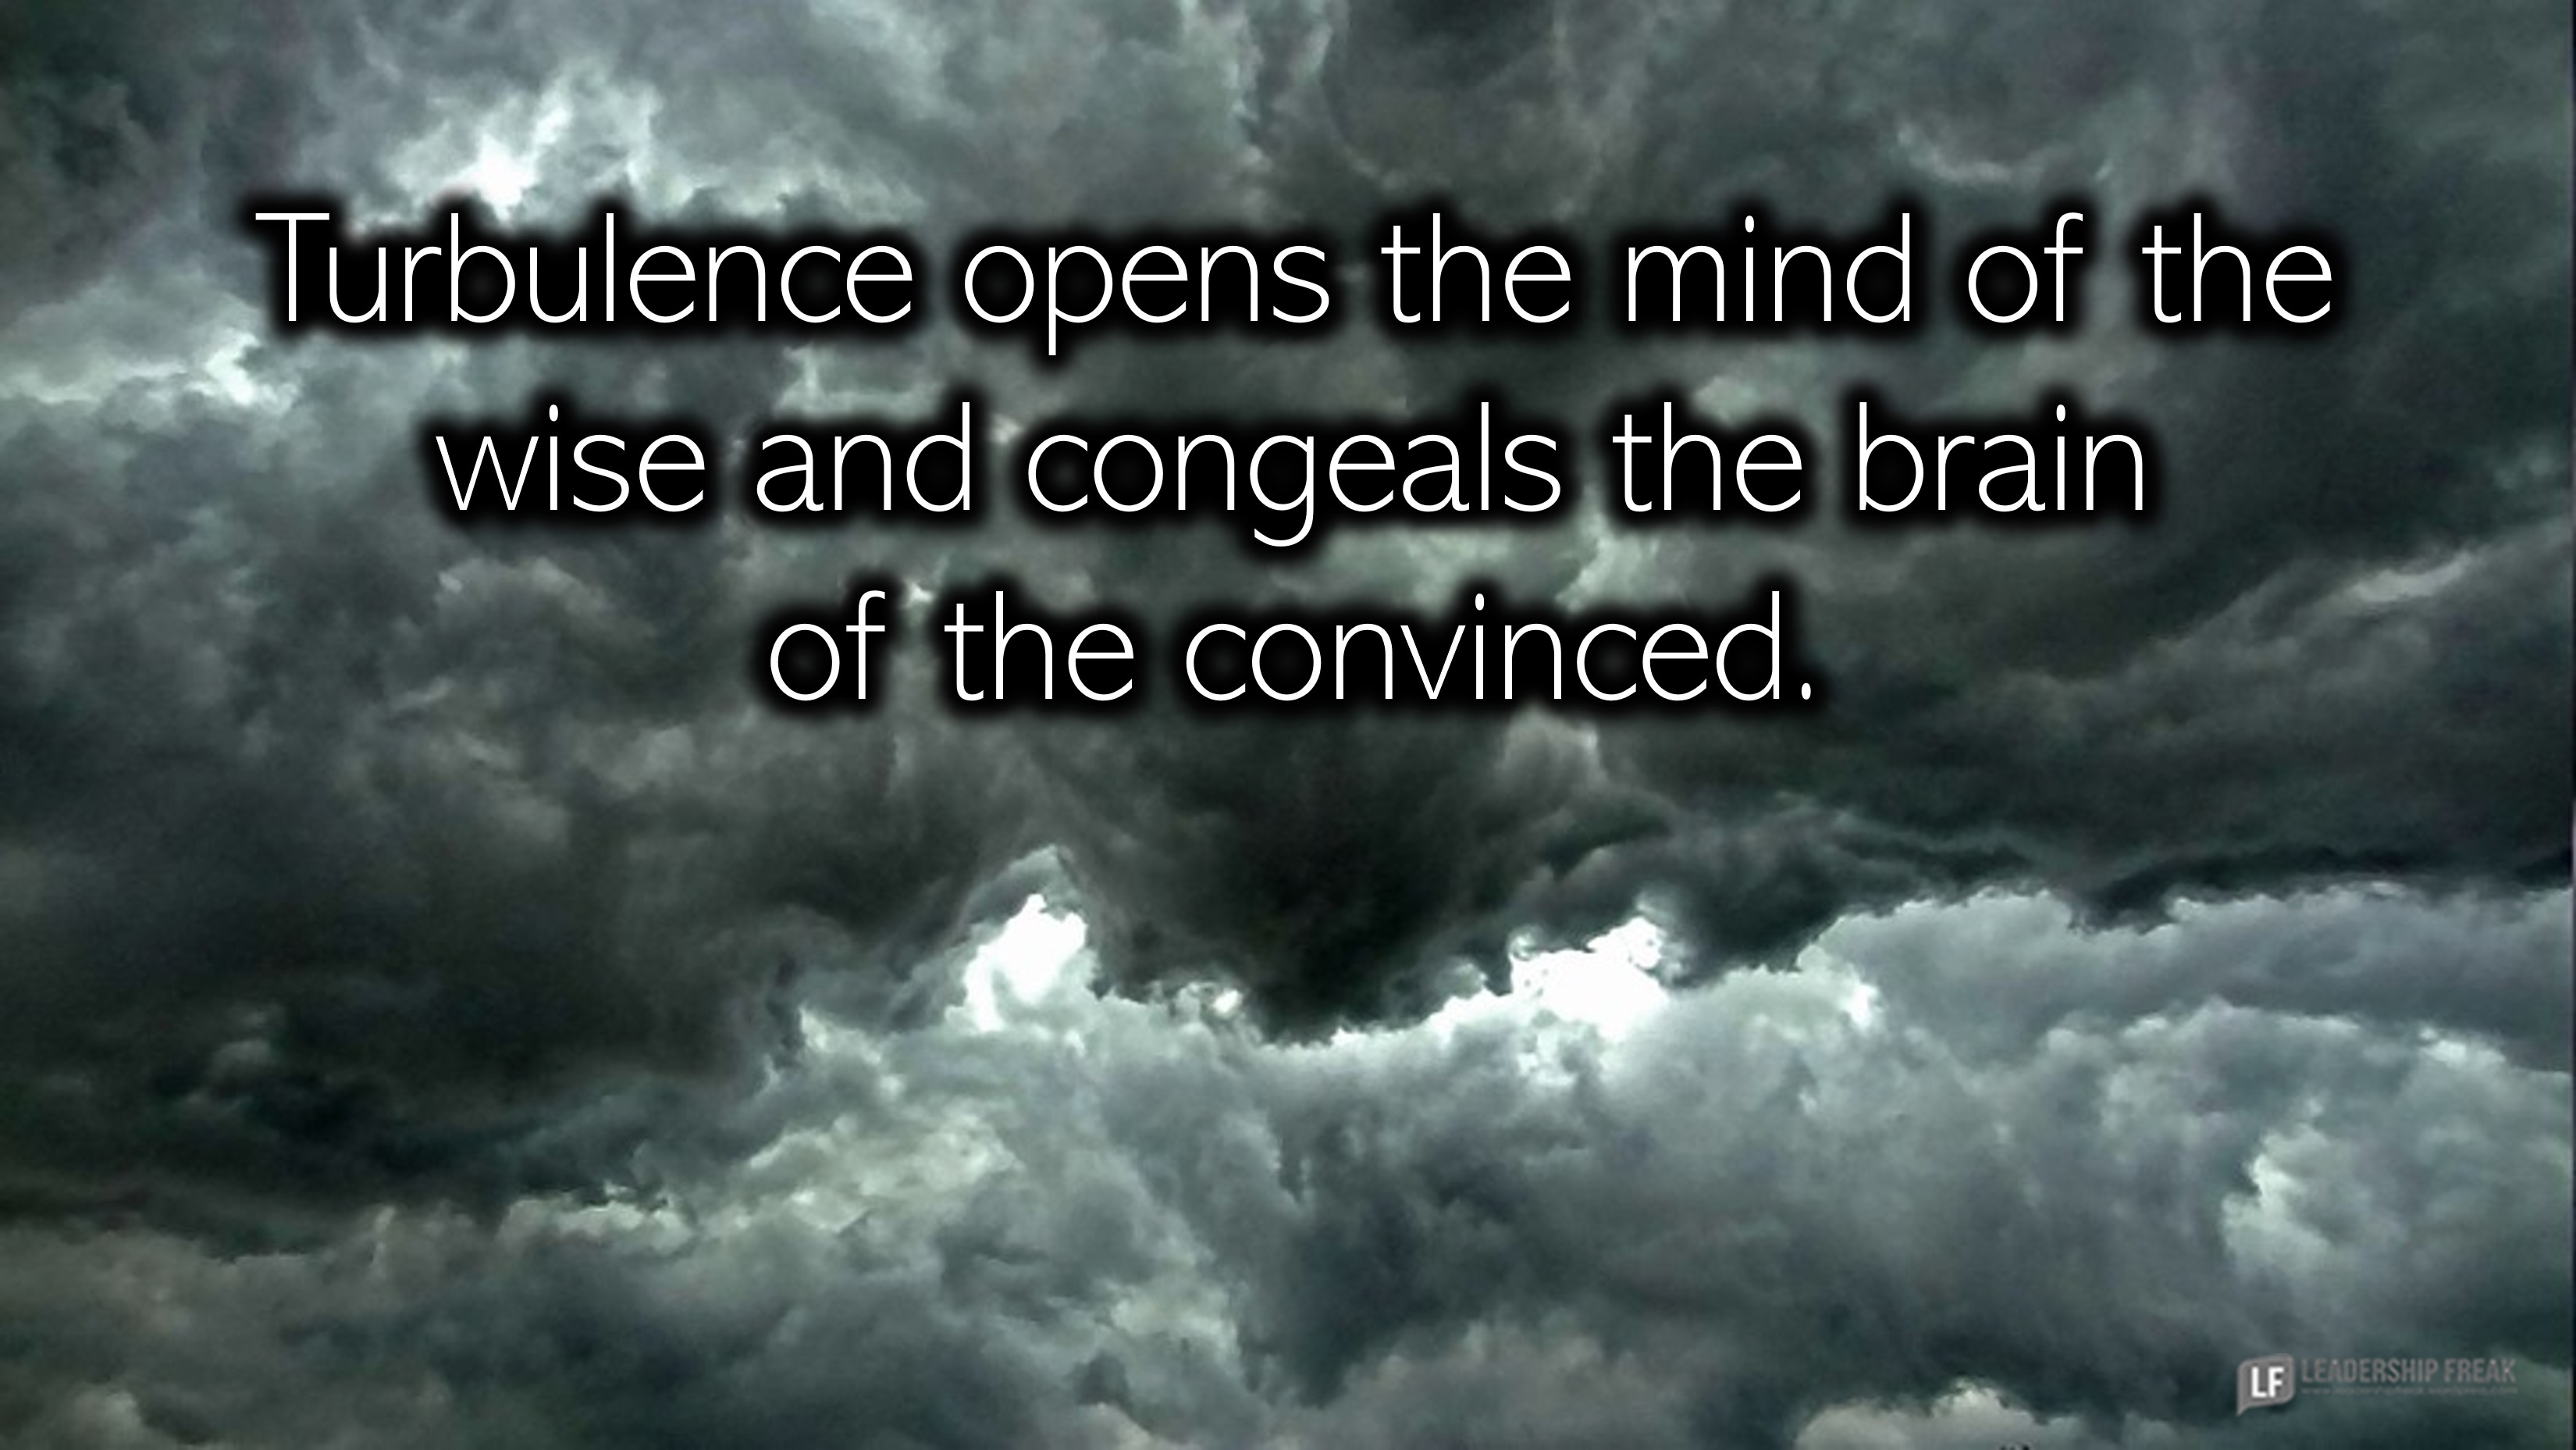 Storm clouds.  Turbulence opens the mind of the wise and congeals the mind of the convinced.